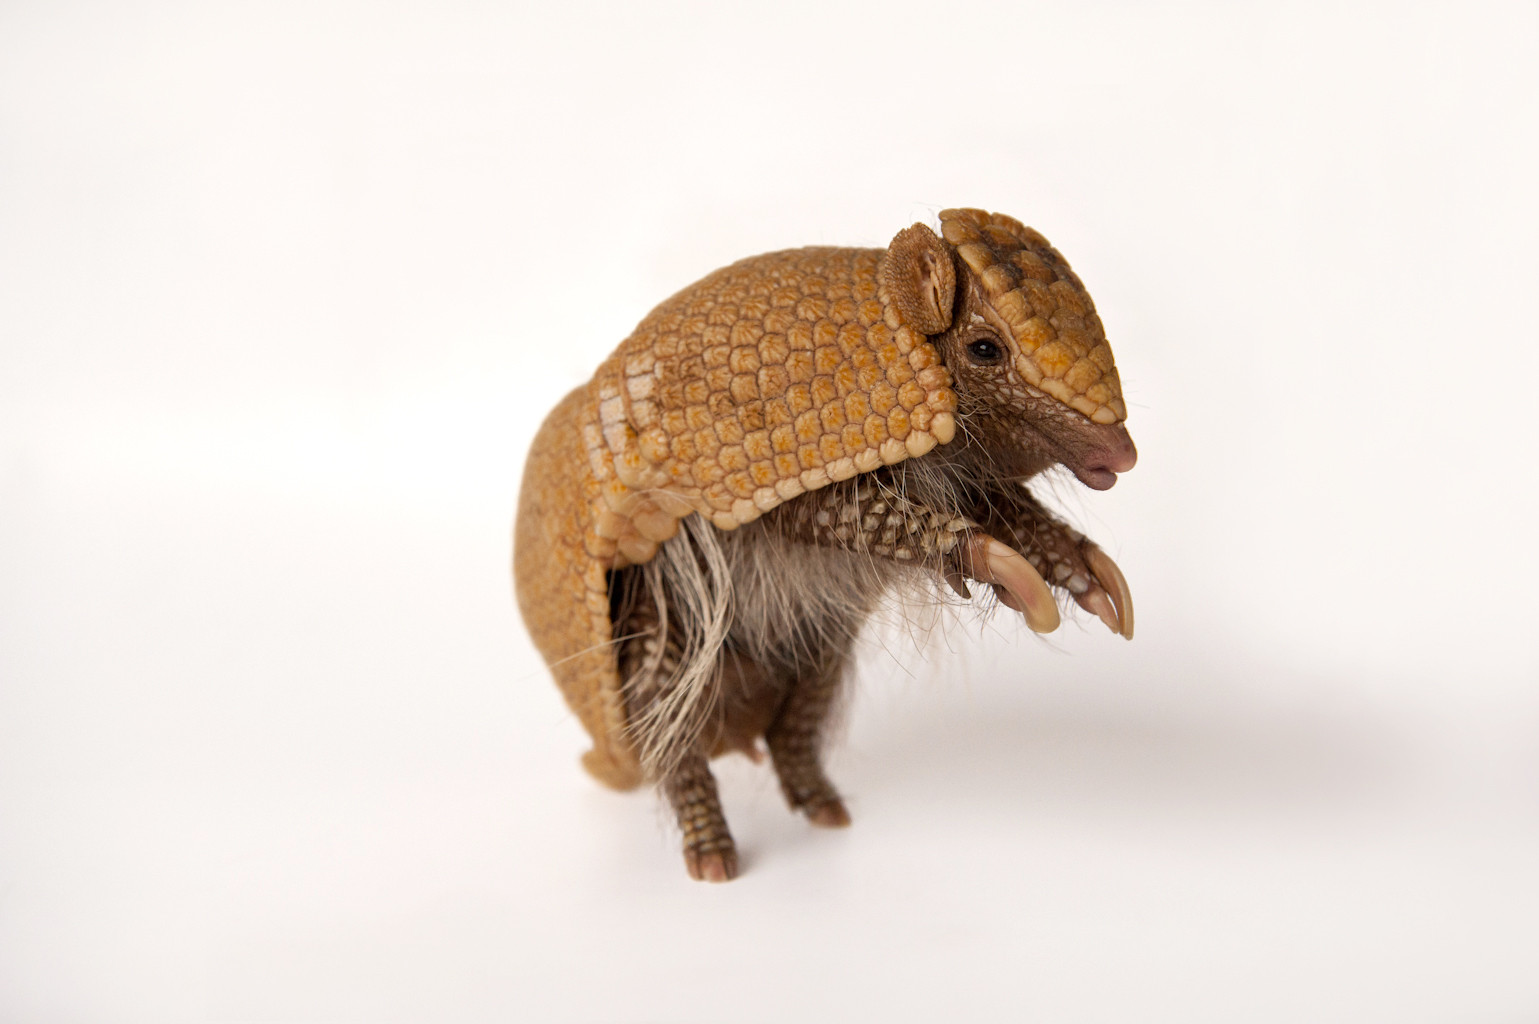 A near threatened southern three-banded armadillo (Tolypeutes matacus).